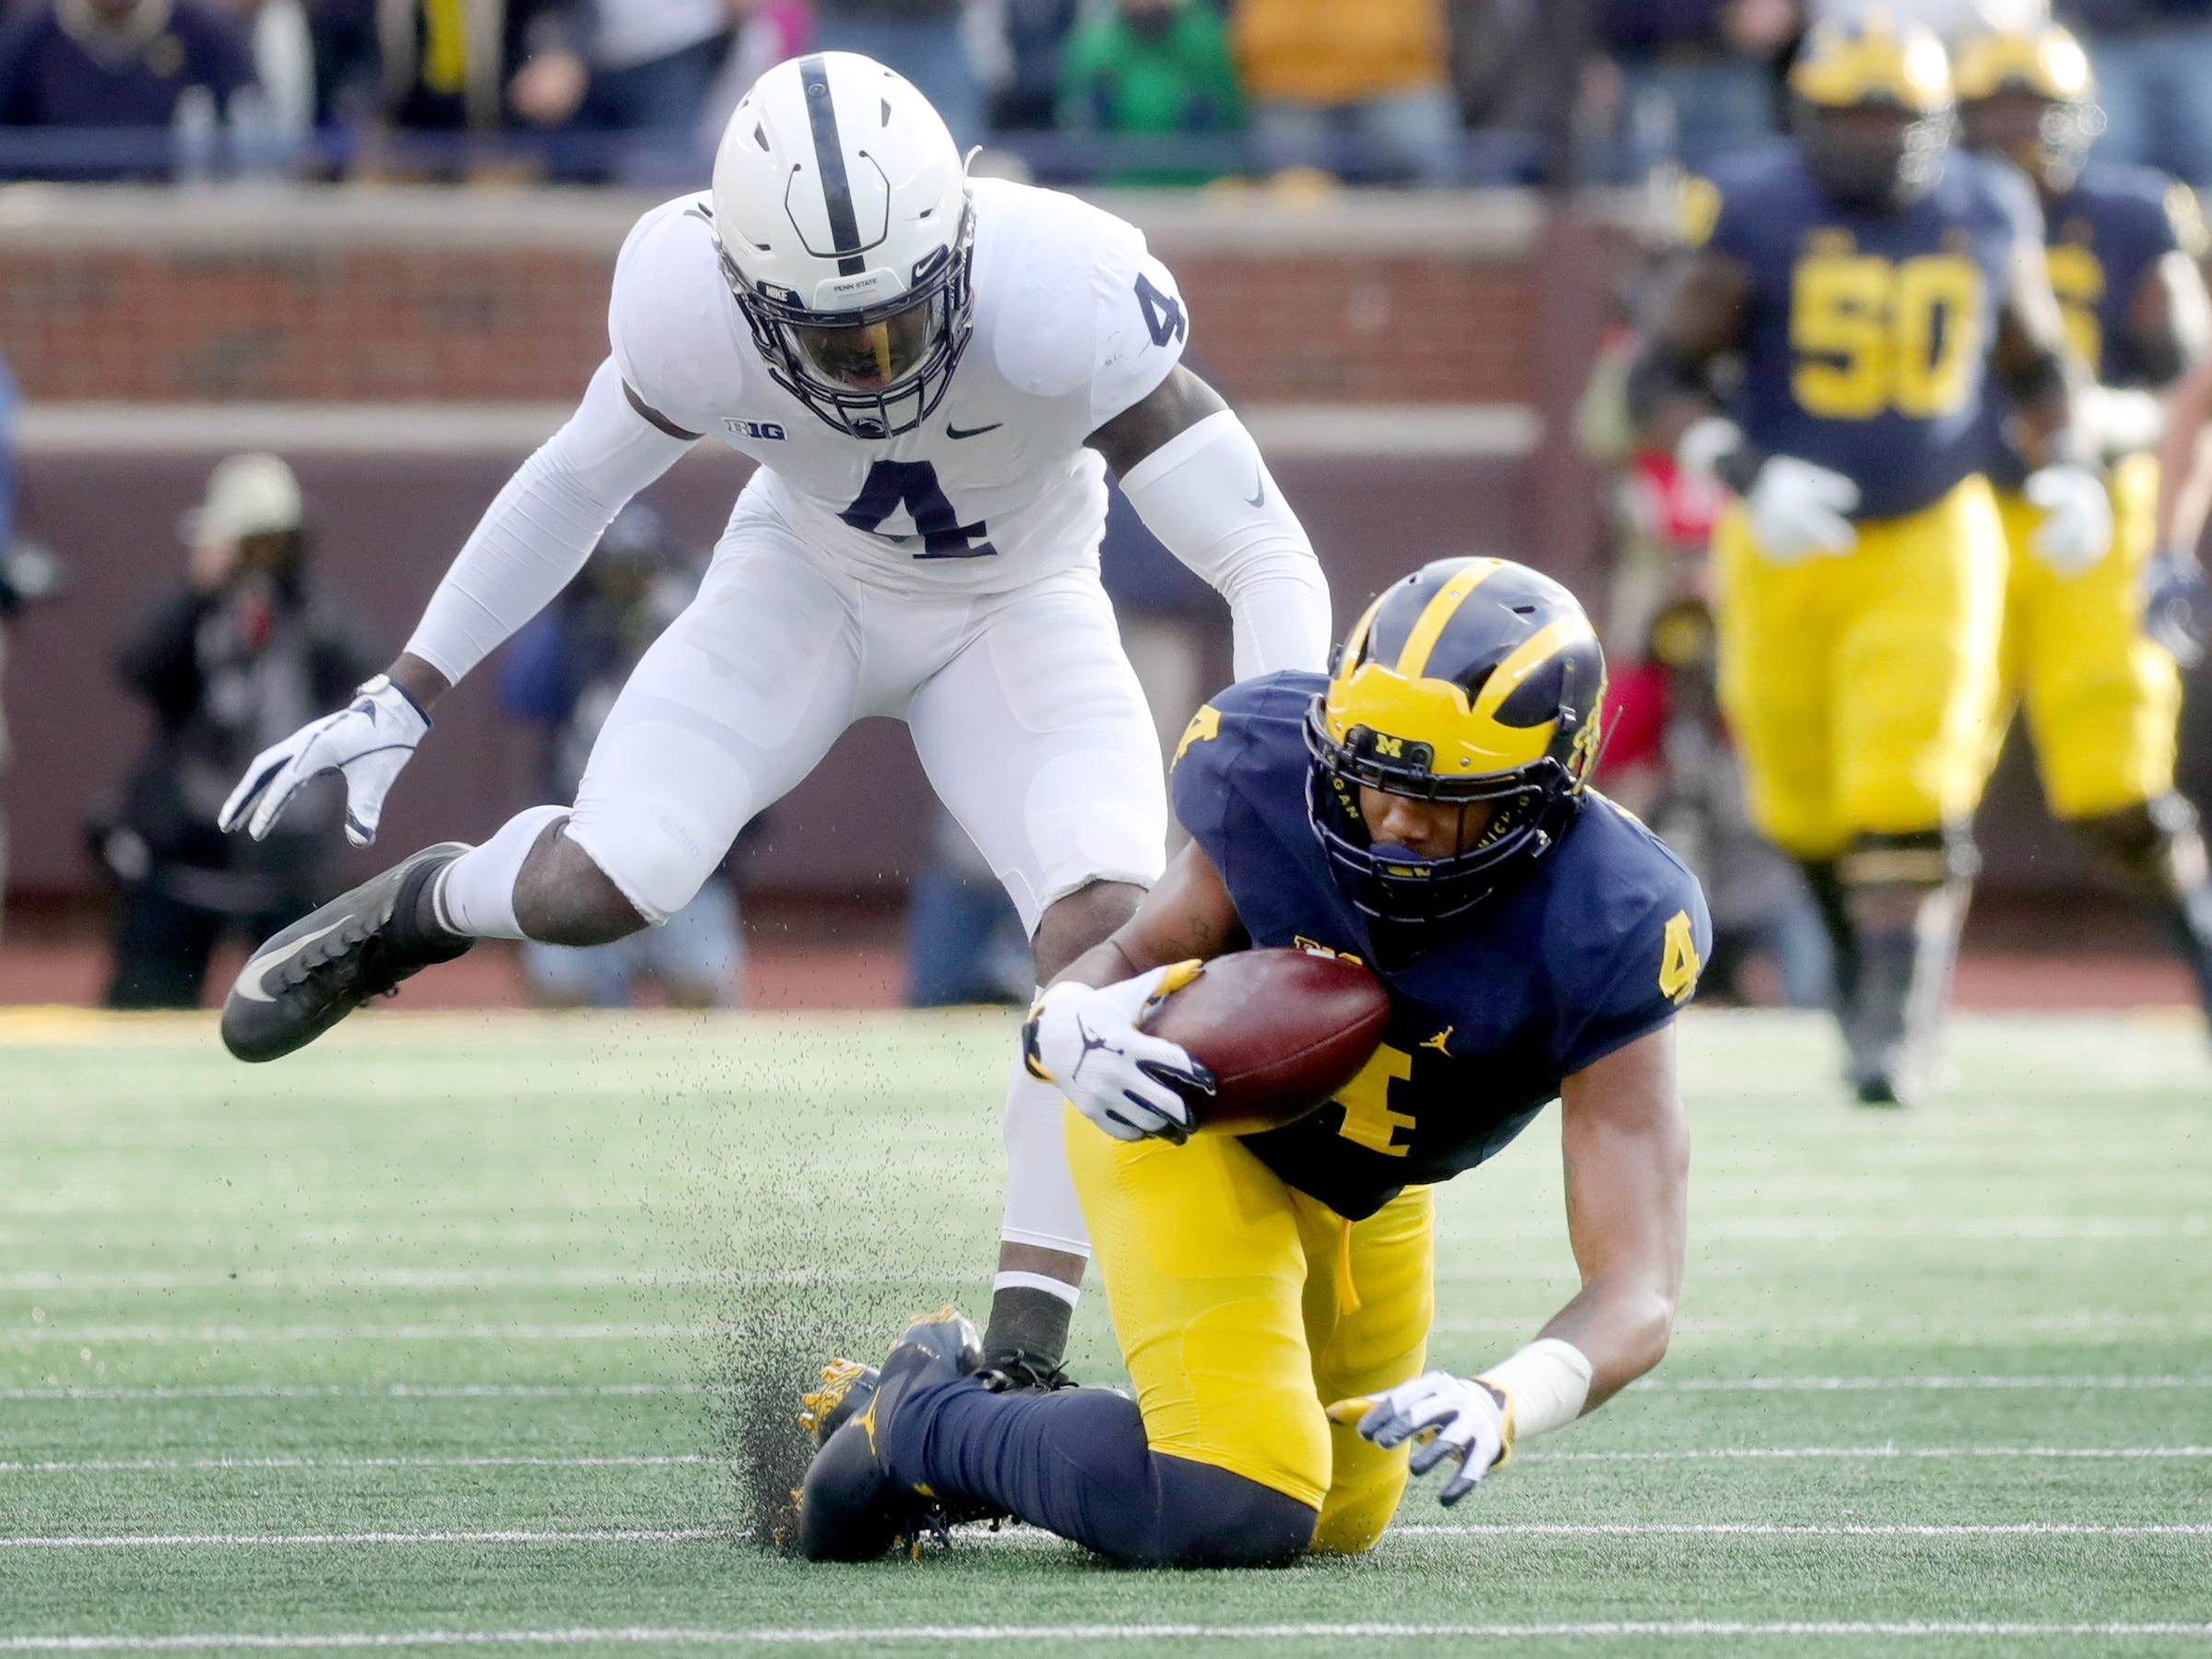 Michigan's Nico Collins makes a catch in front of Penn State's Nick Scott during the first half Saturday, Nov. 3, 2018 at Michigan Stadium in Ann Arbor.